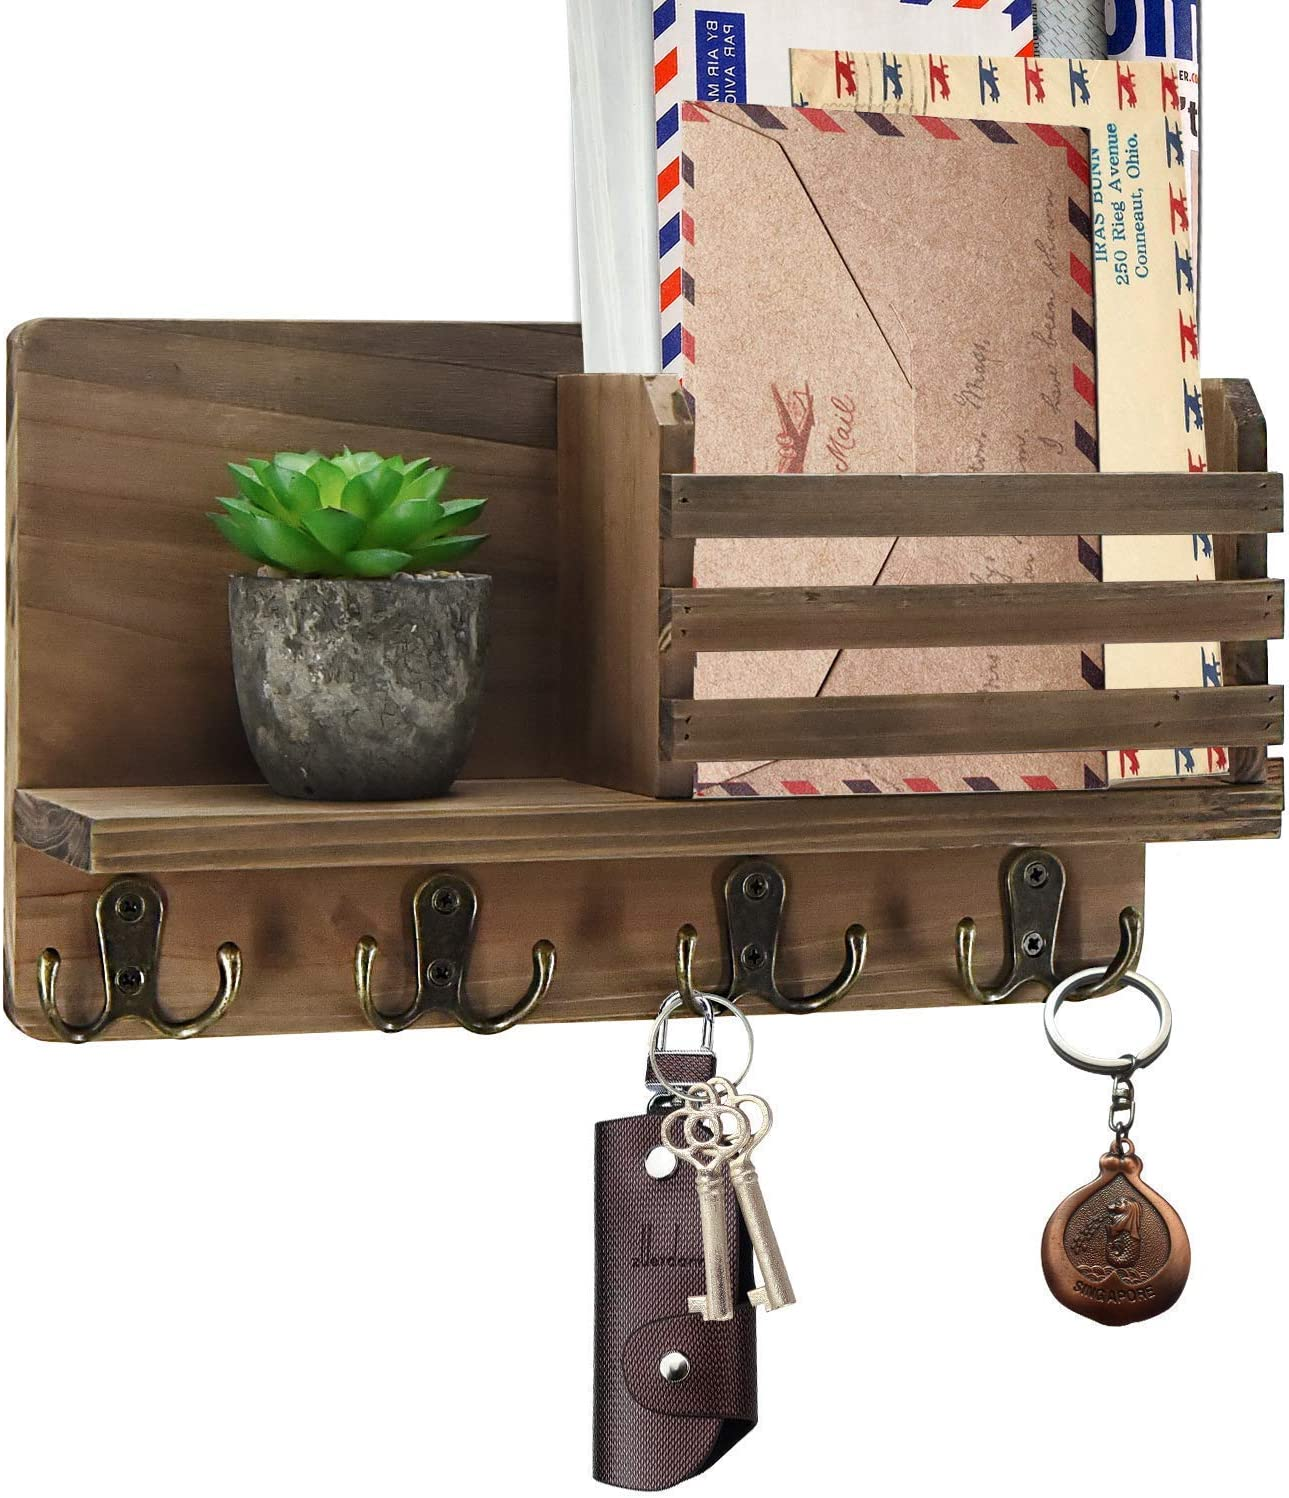 Y&ME YM Small Mail Organizer Wall Mounted, Rustic Key Hangers and Mail Sorter, Wood Decorative Mail Shelf with 4 Hooks, Key Holder for Wall, Wooden Key and Mail Holder for Wall Decorative